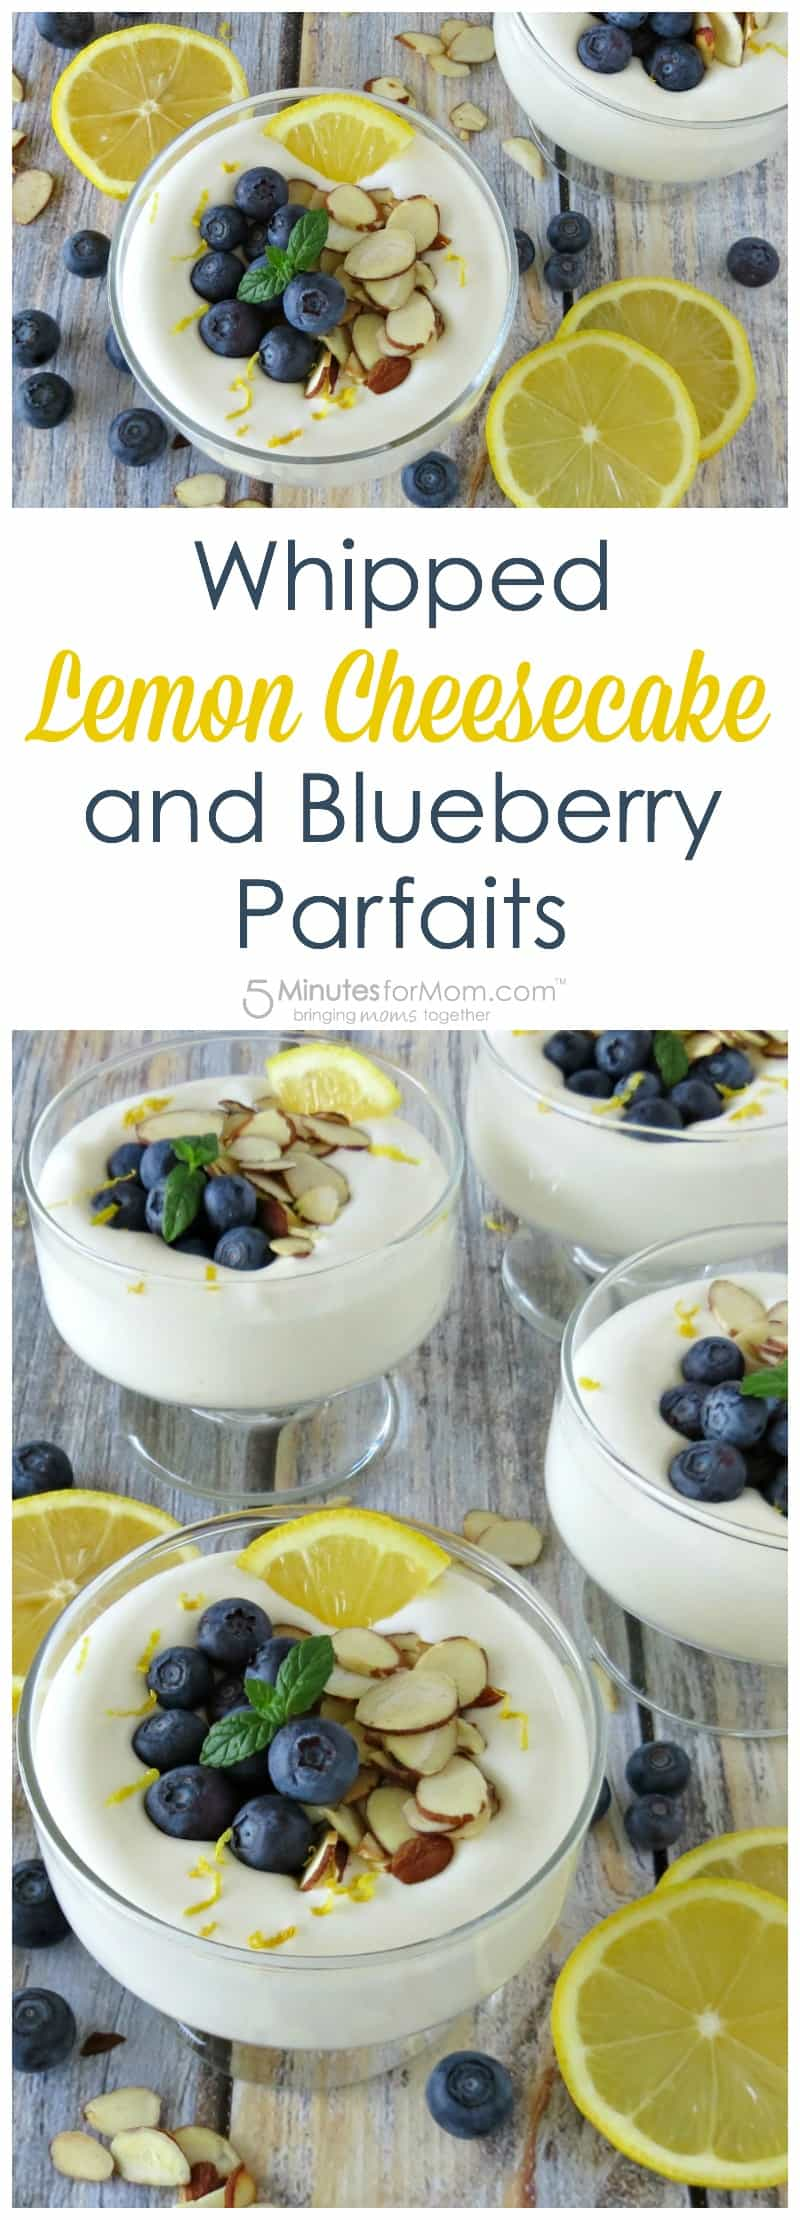 Whipped Lemon Cheesecake and Blueberry Parfaits